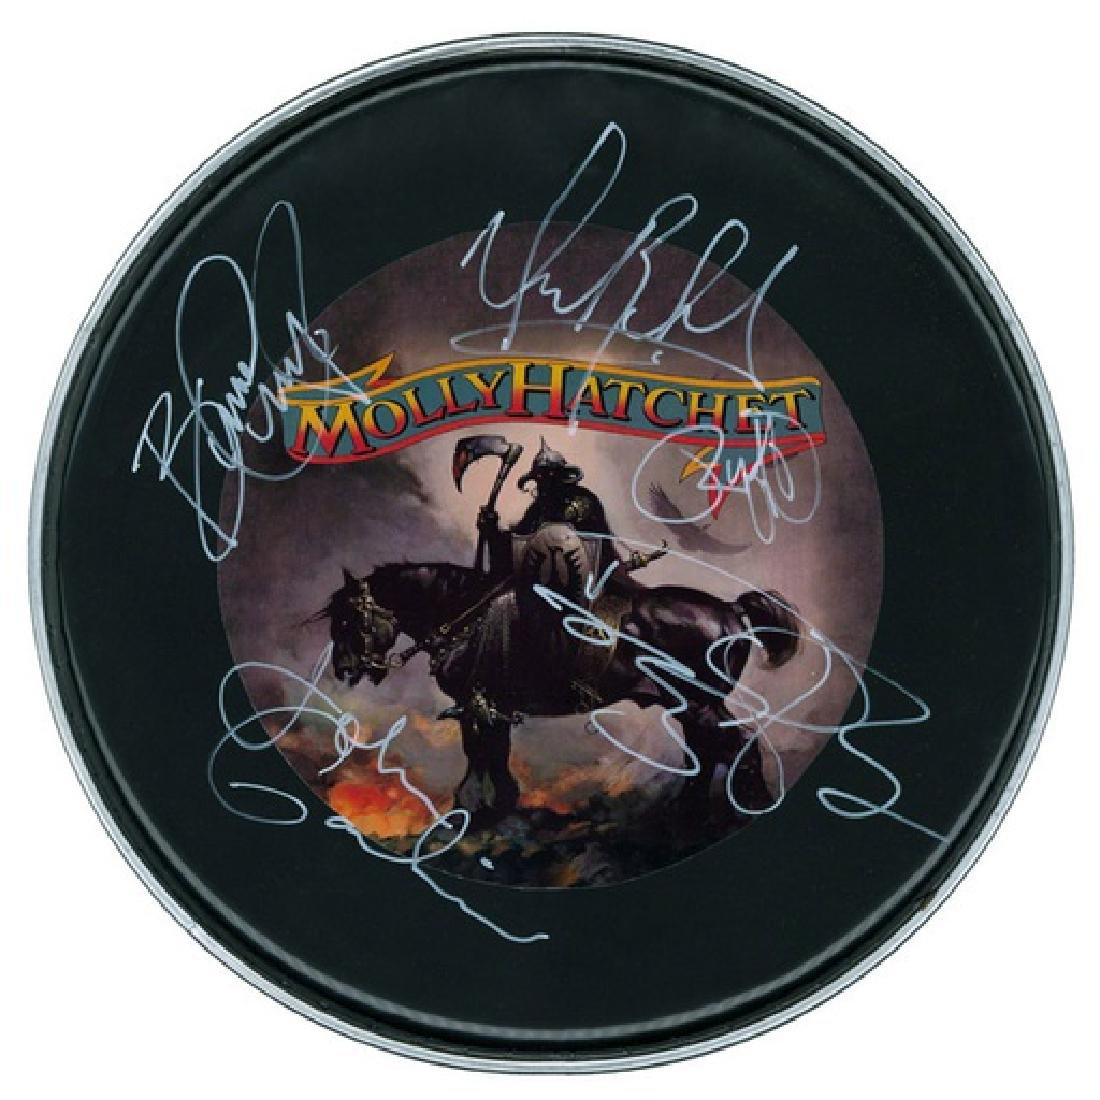 Molly Hatchett Signed Drum Head